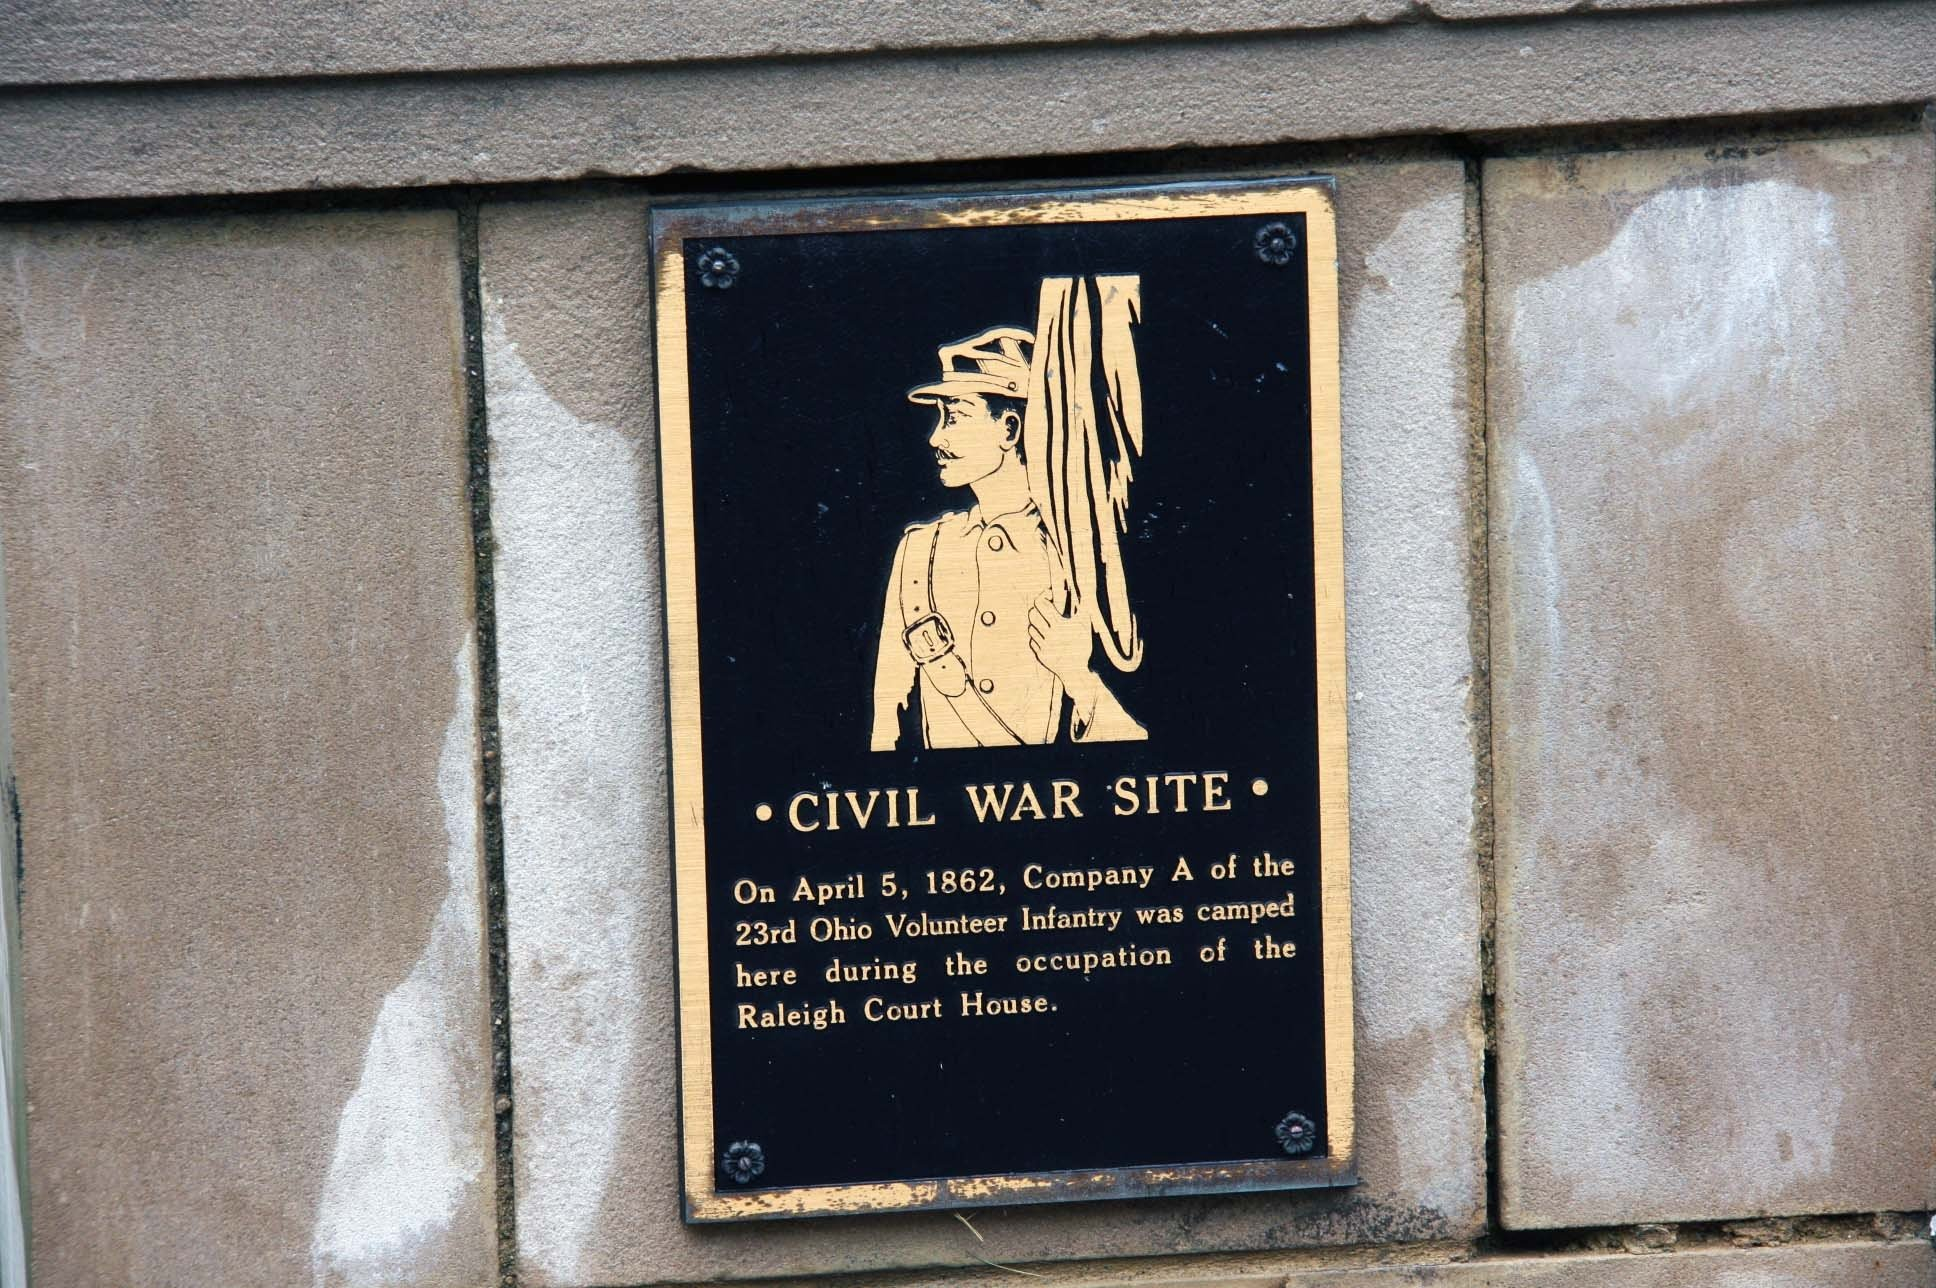 This small plaque was placed near the entrance of the courthouse to commemorate the 23rd Ohio's Company A occupation of the site in 1862. Image obtained from the Historical Marker Database.